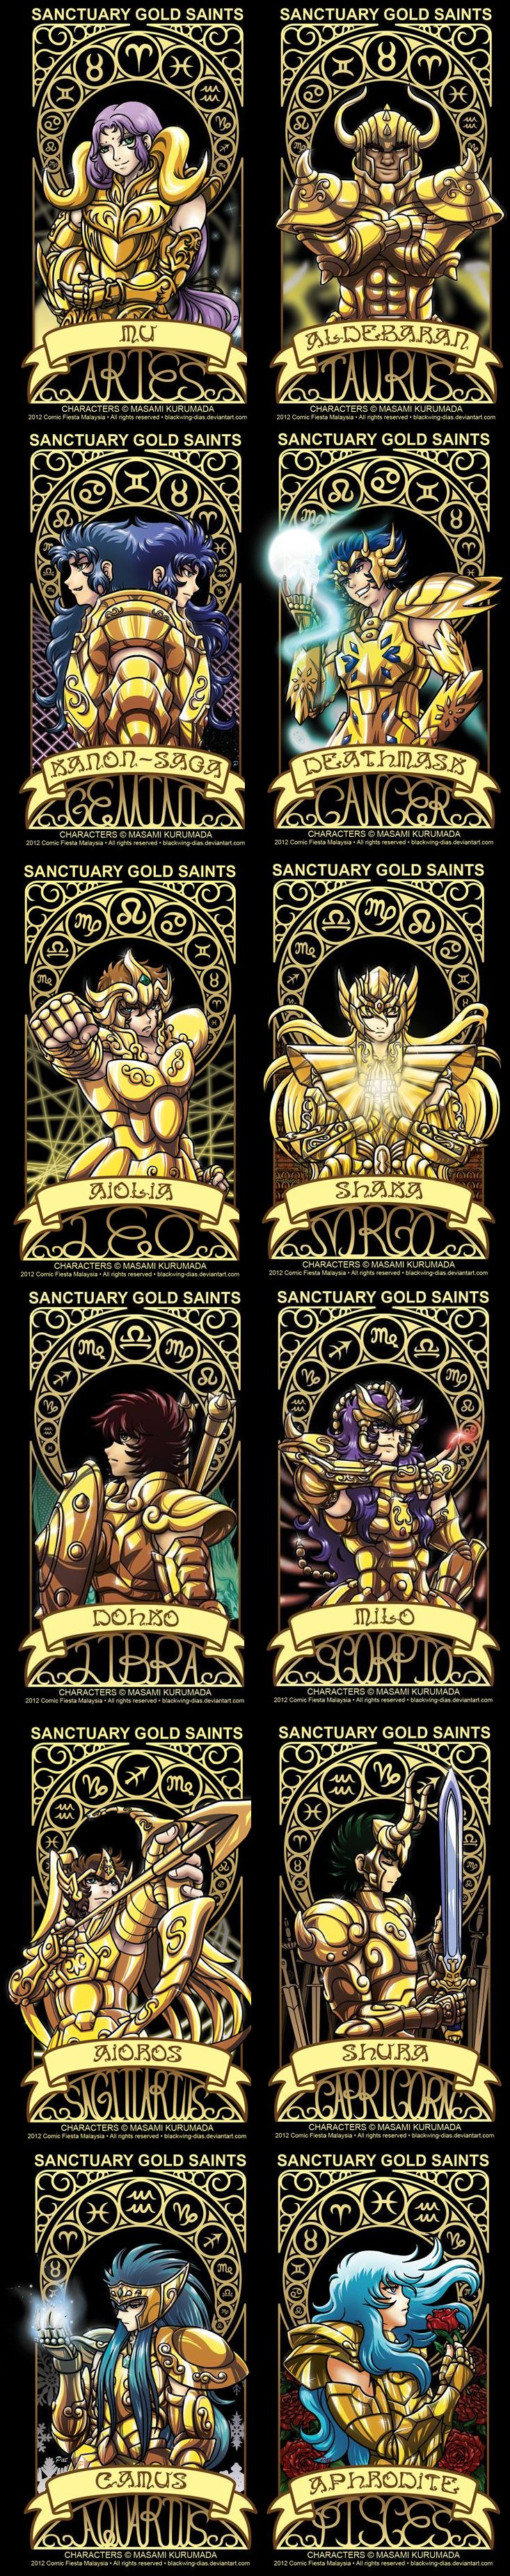 Gold Saints Cards Gold Saints  ♈ ♉ ♊ ♋ ♌ ♍ ♎ ♏ ♐ ♑ ♒ ♓